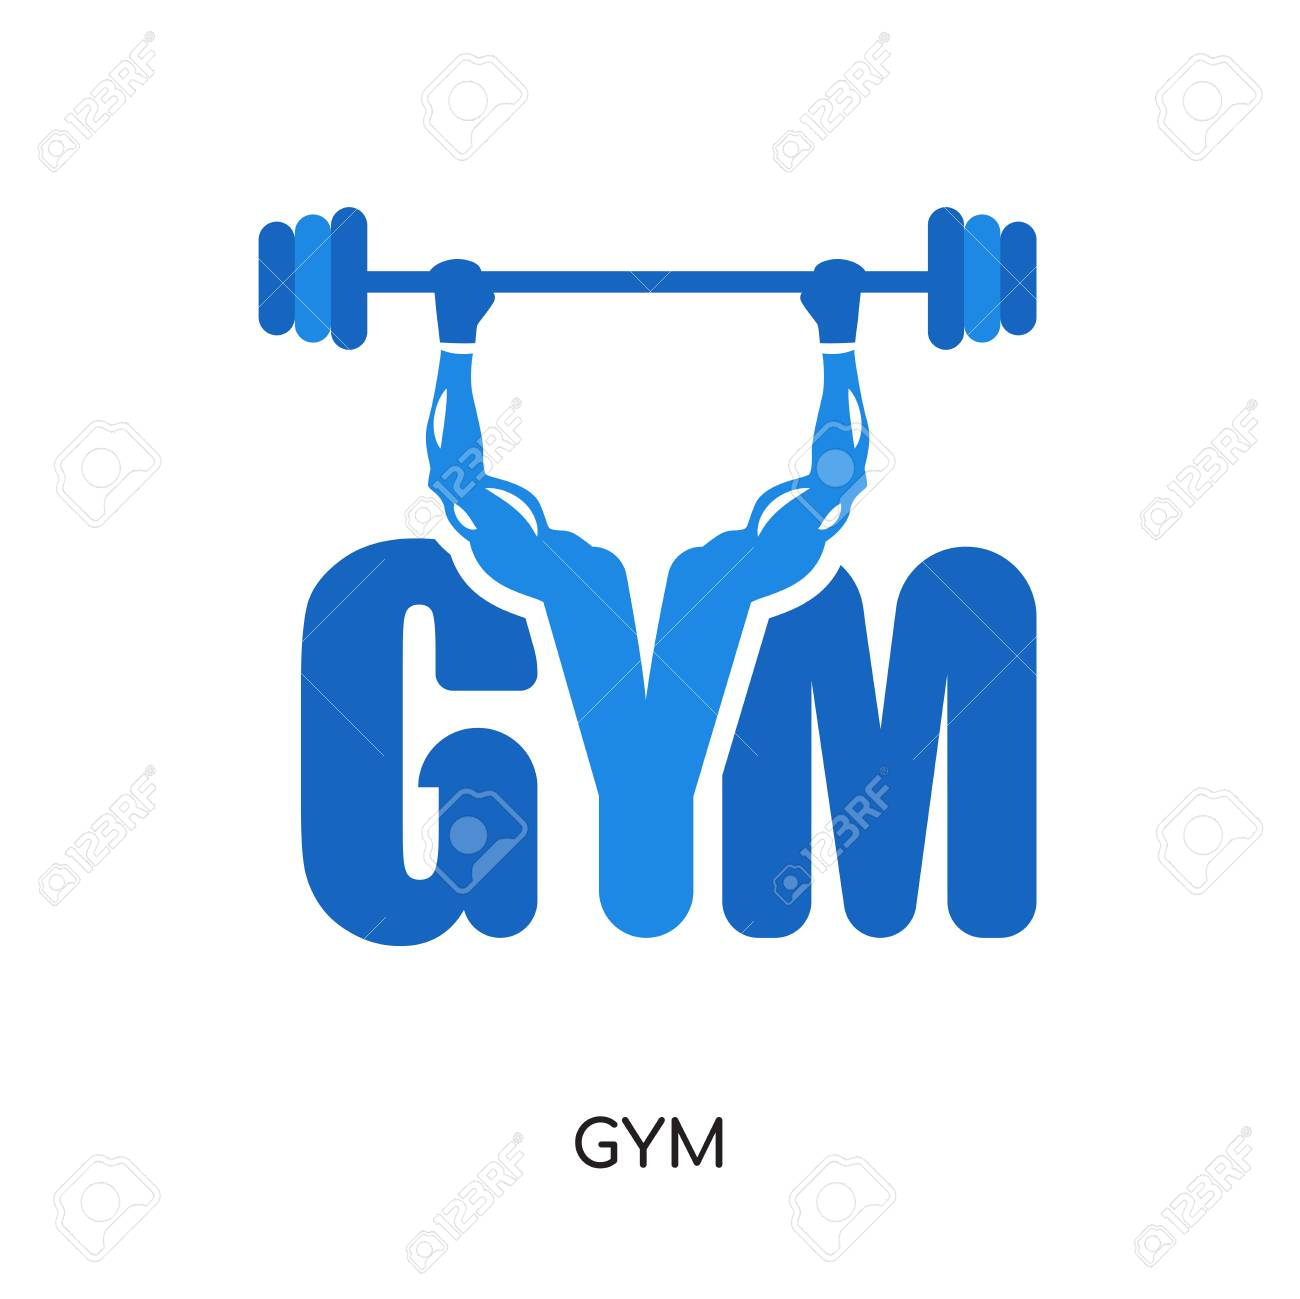 gym logo png isolated on white background for your web and mobile